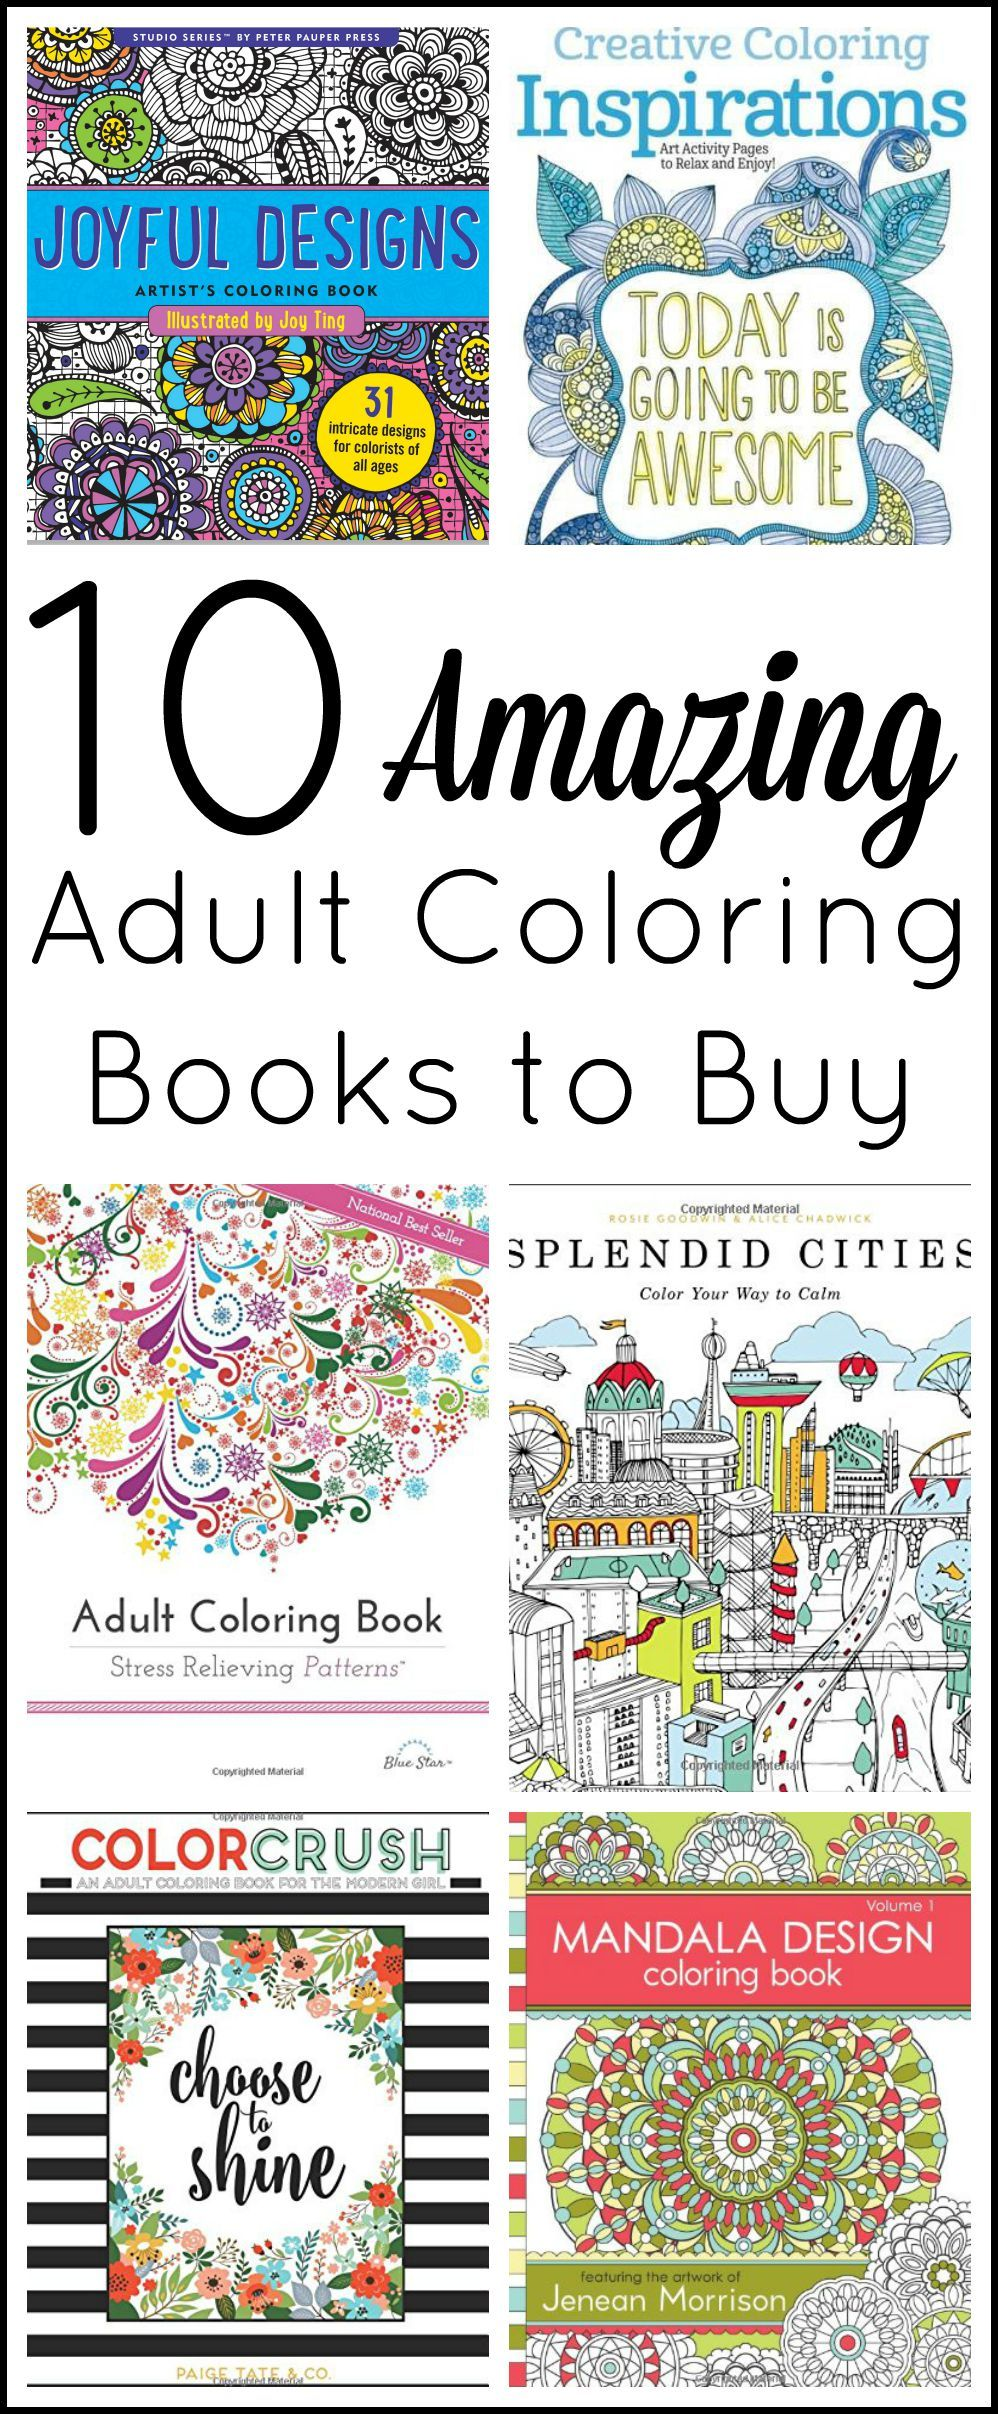 Adult Coloring Books to Buy | Colorear, Mandalas y Colorin